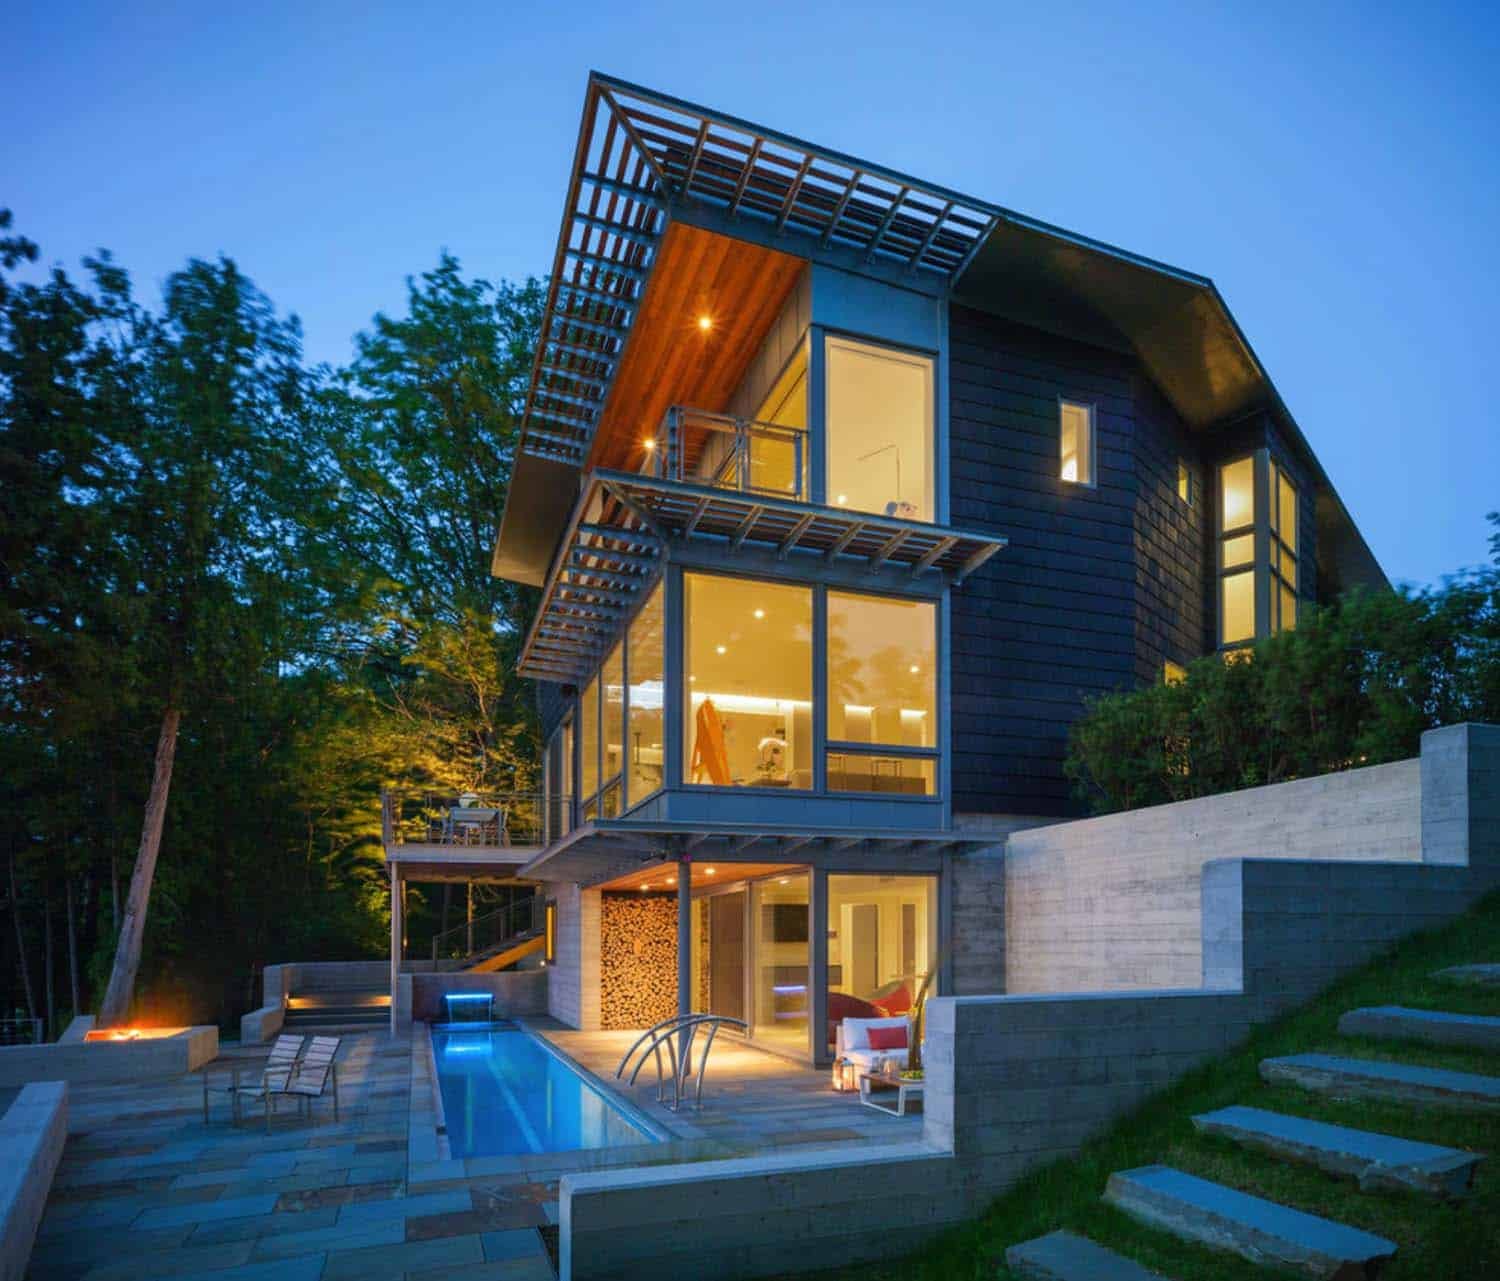 Roundtree Apartments: Striking Contemporary Home Perched On A Cliff Overlooking